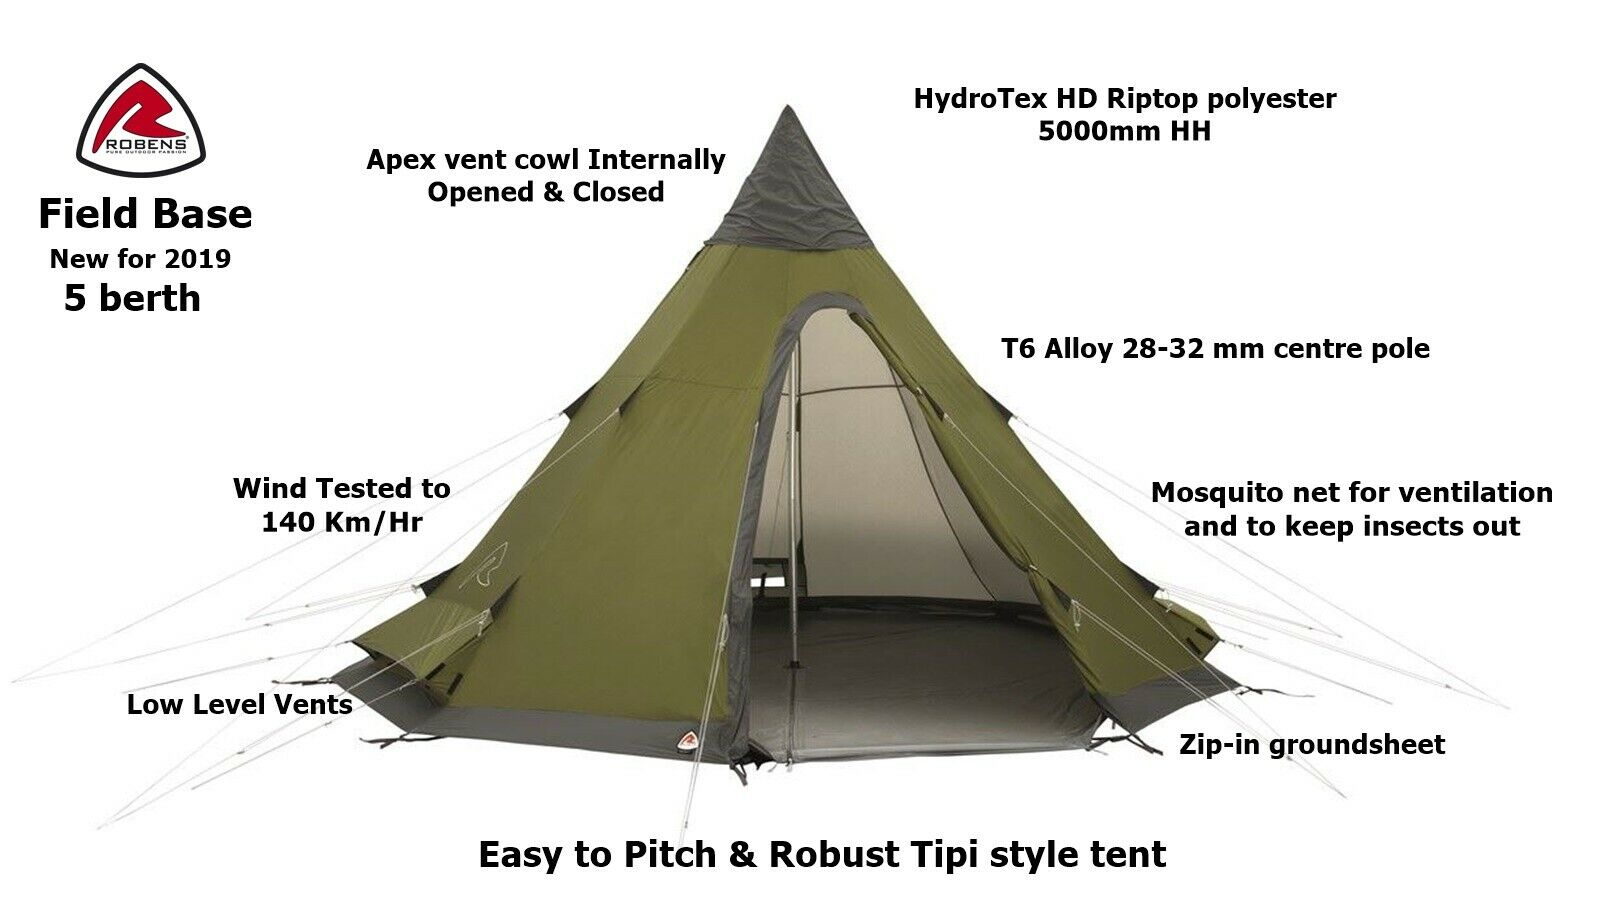 Robens Field Base - 5 Berth Tipi -Robust & Easy to Pitch- NEW for 2019